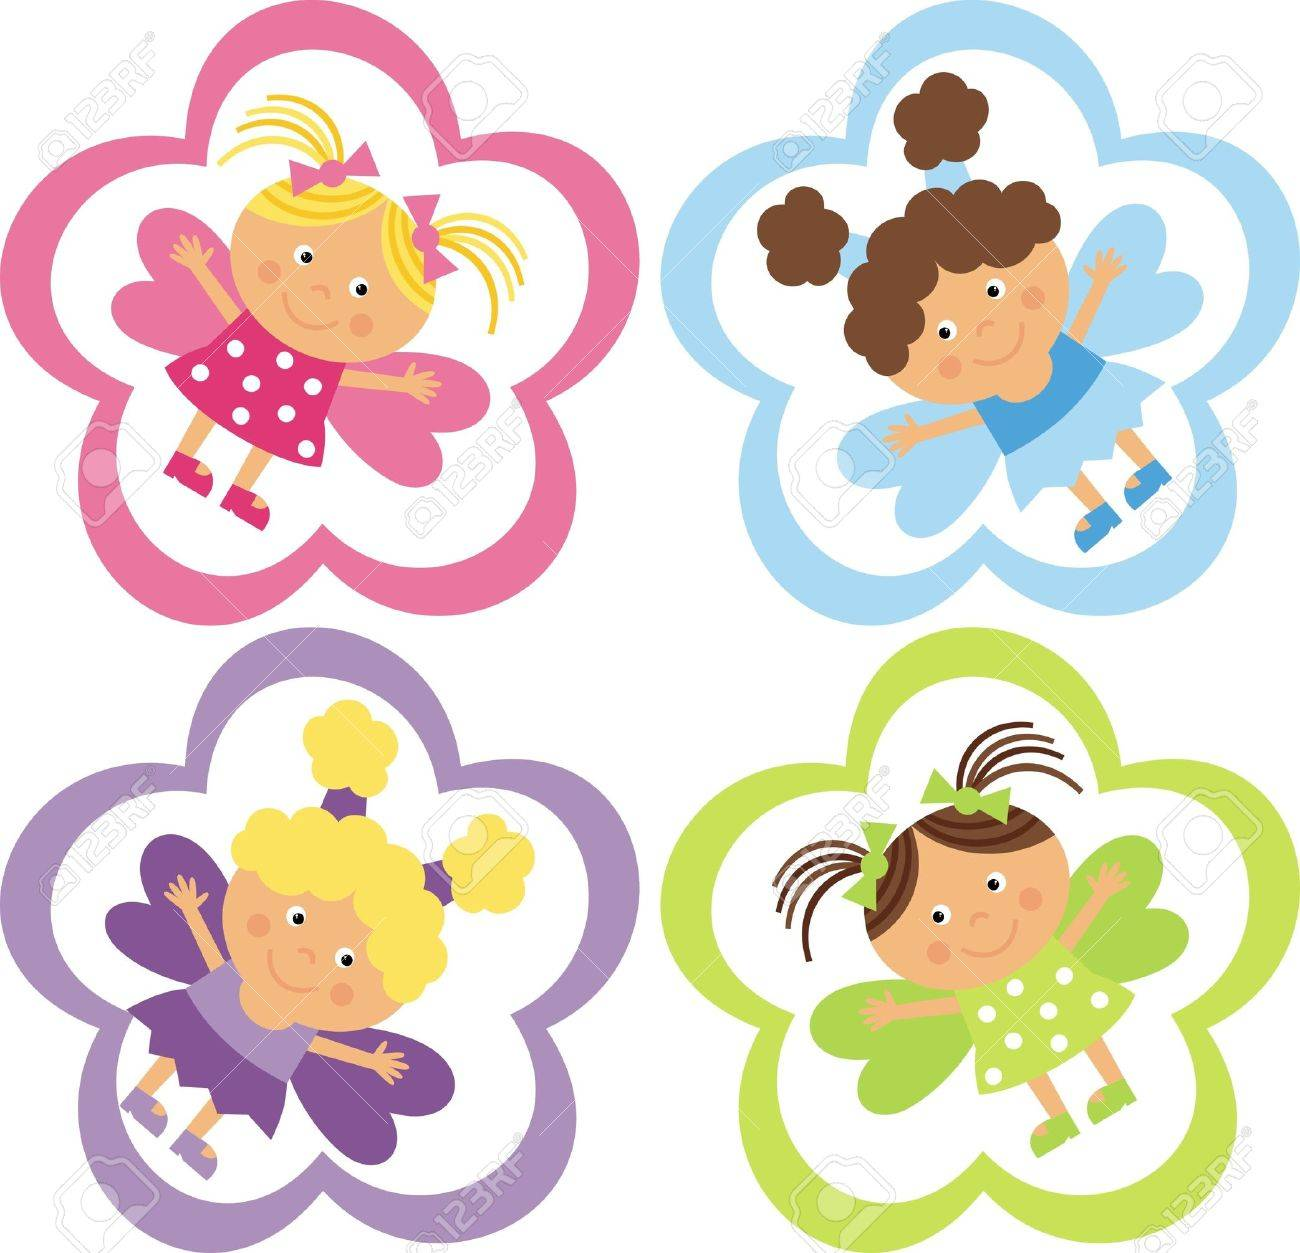 tag with the fairies royalty free cliparts vectors and stock